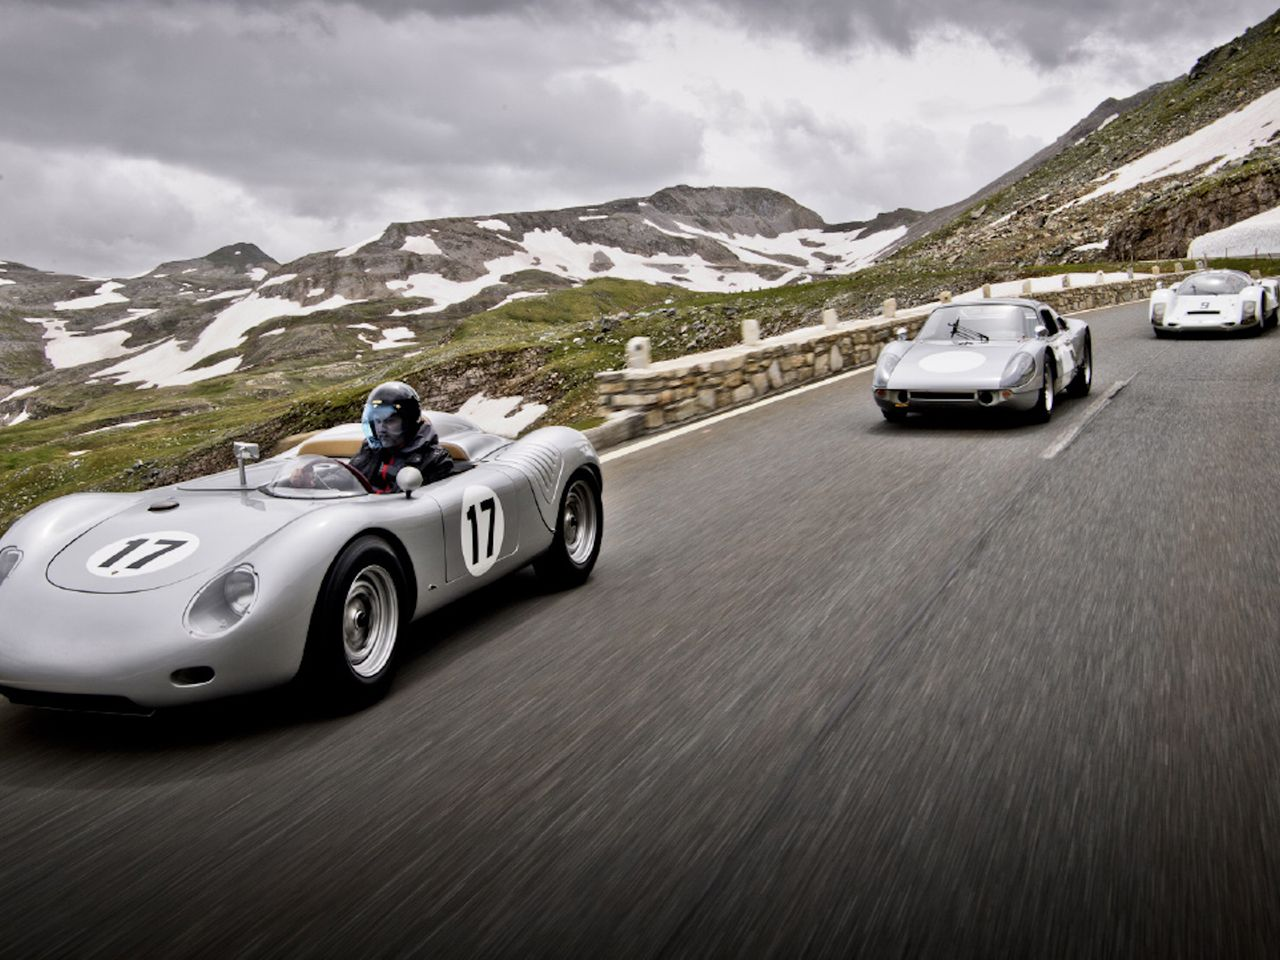 Impressive trio: A 718 RSK in front, backed by a 904 and a 906.